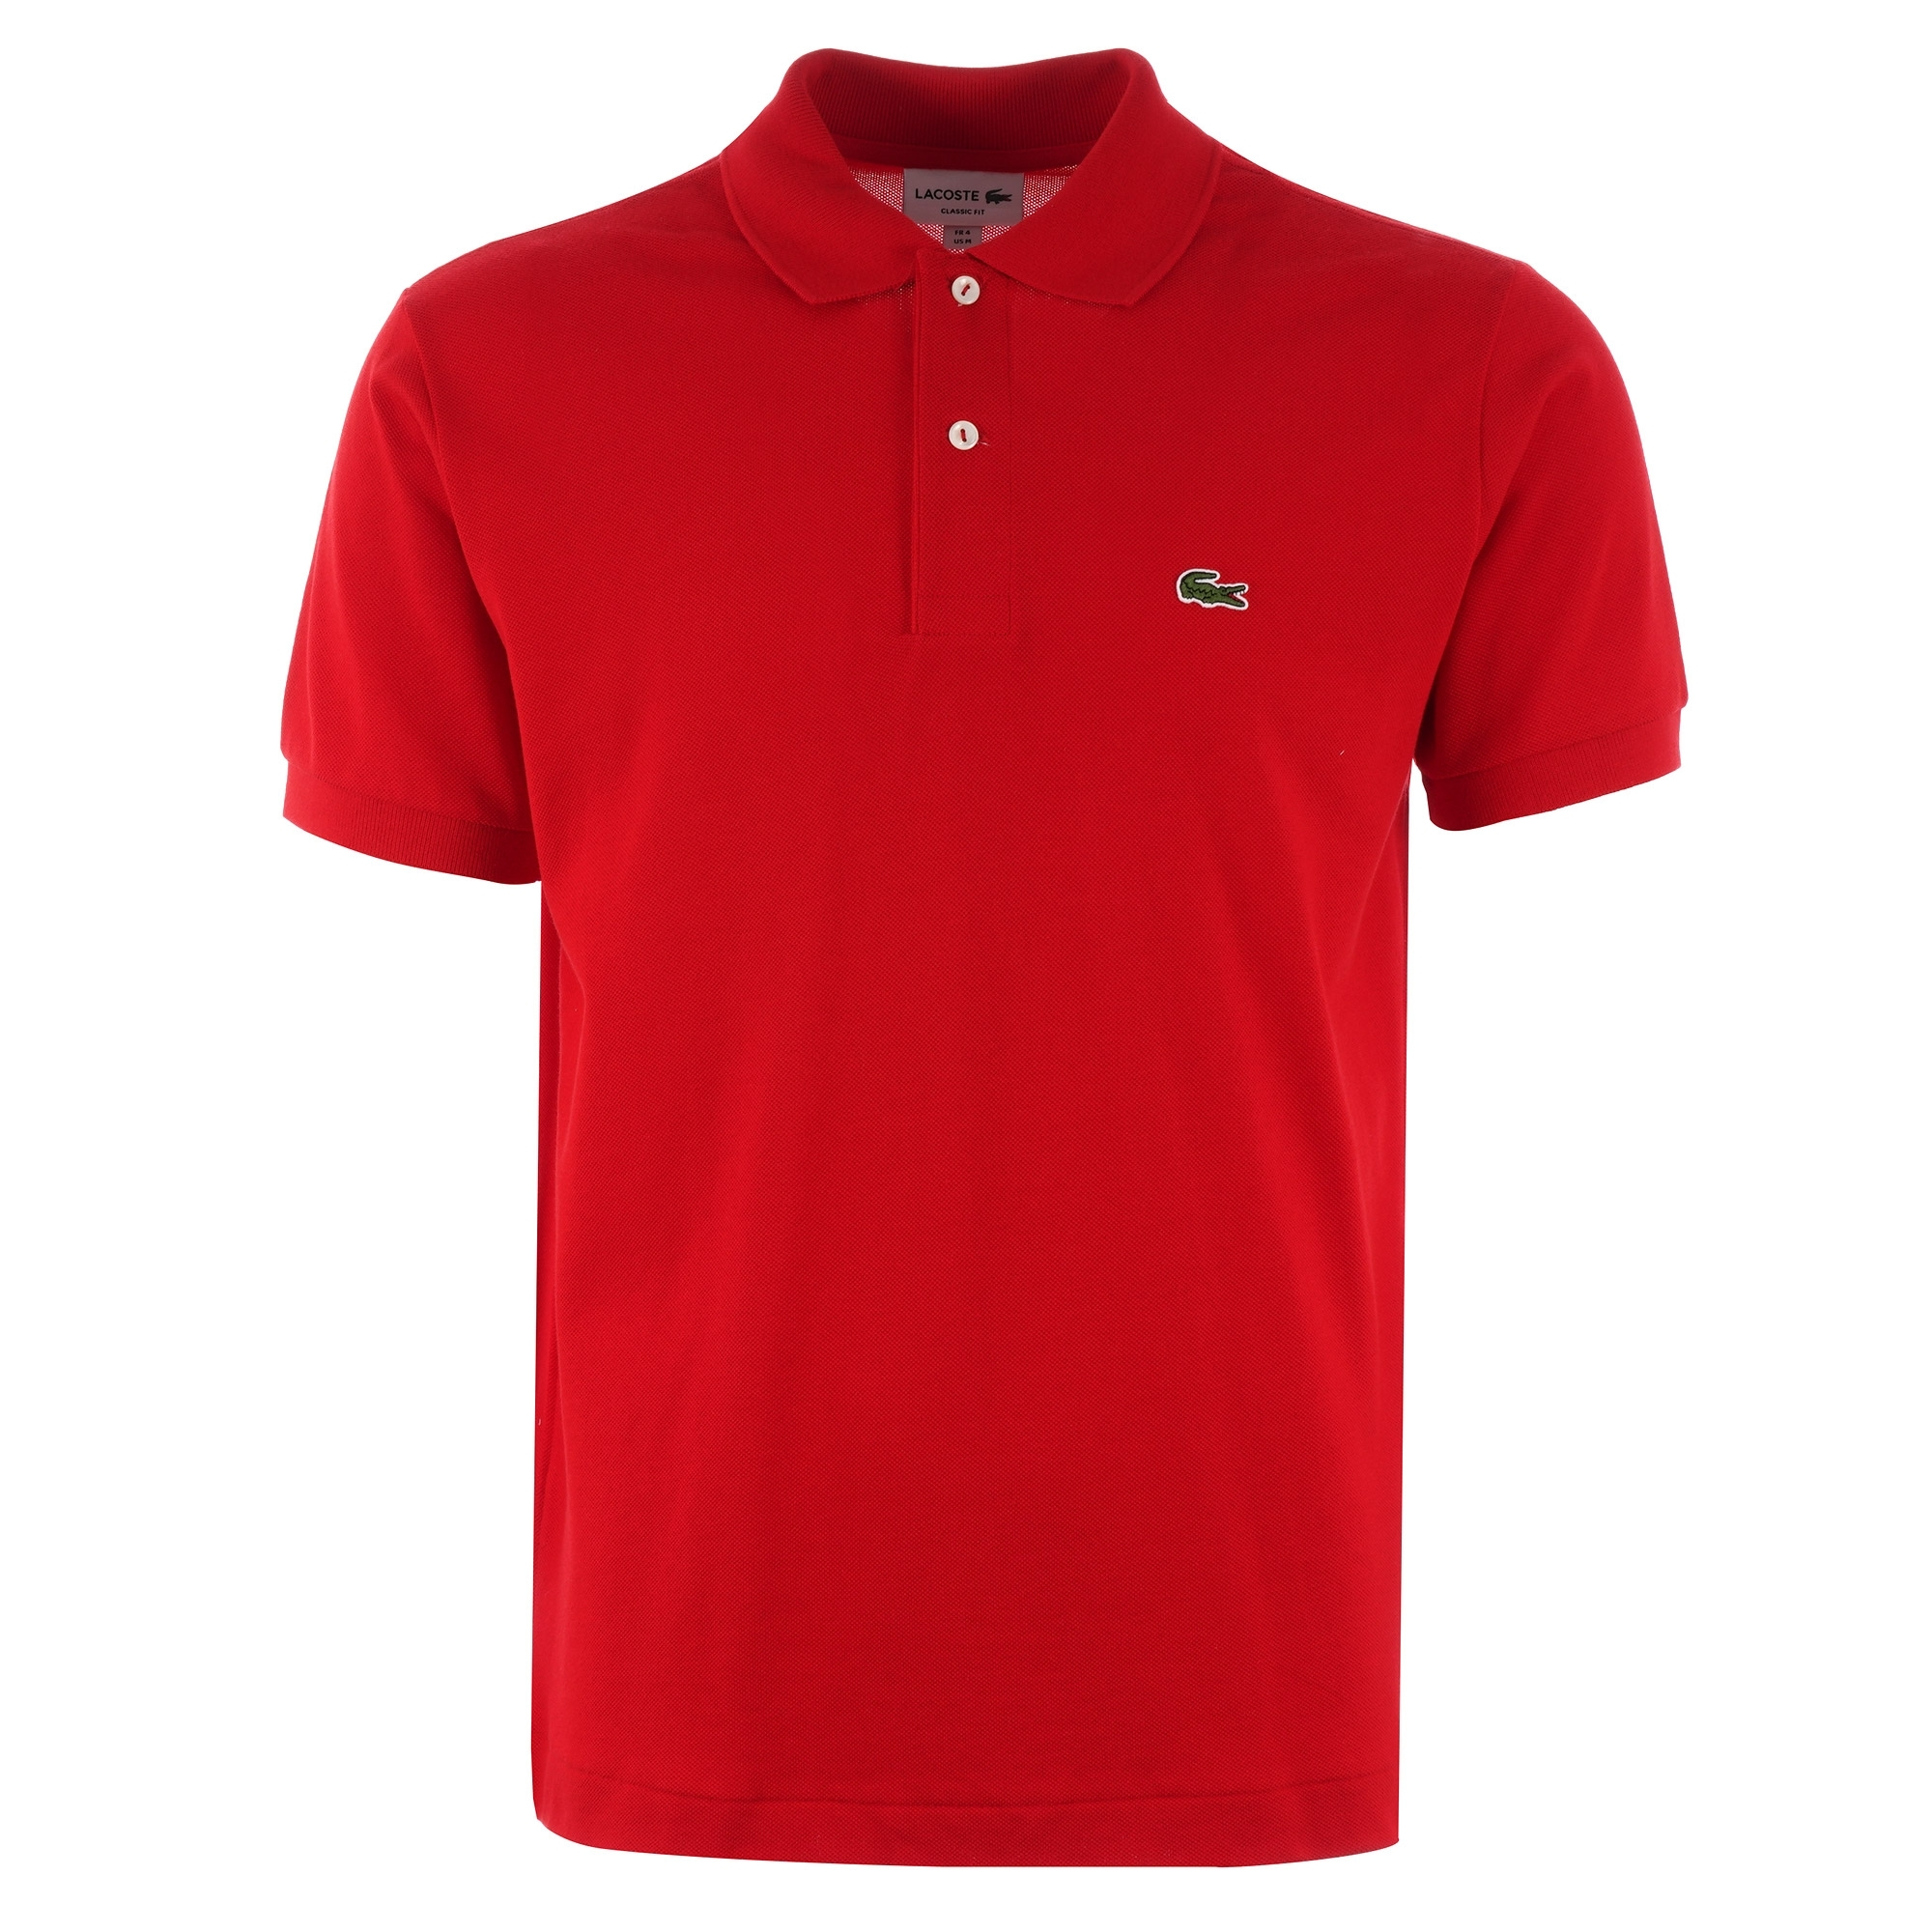 78dffe3a2 Lacoste L.12.12 Polo Shirt